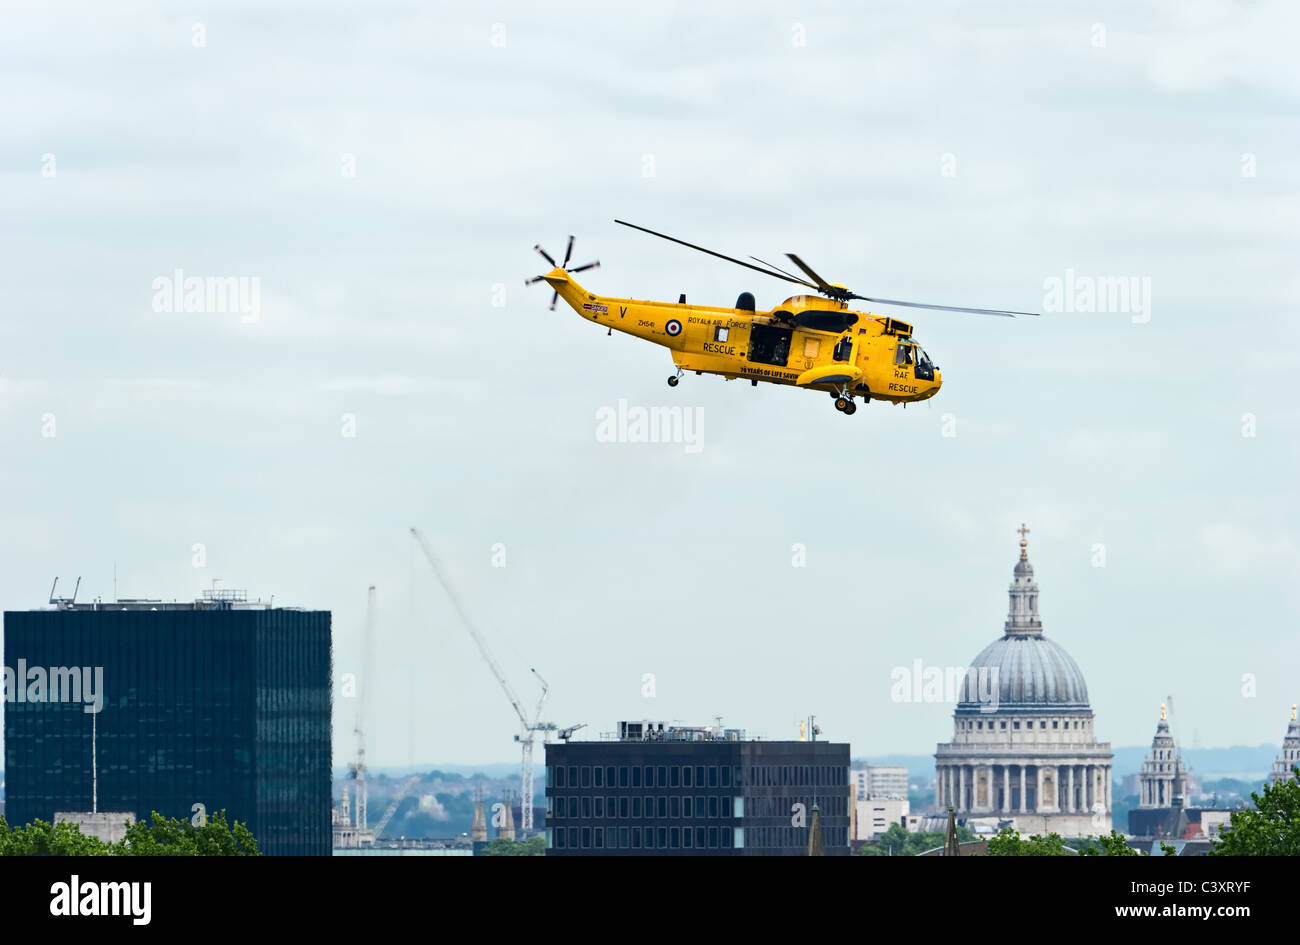 Westland Sea King HAR3A Search and Rescue helicopter from the A-flight, No. 22 Squadron RAF, taking off over London, - Stock Image